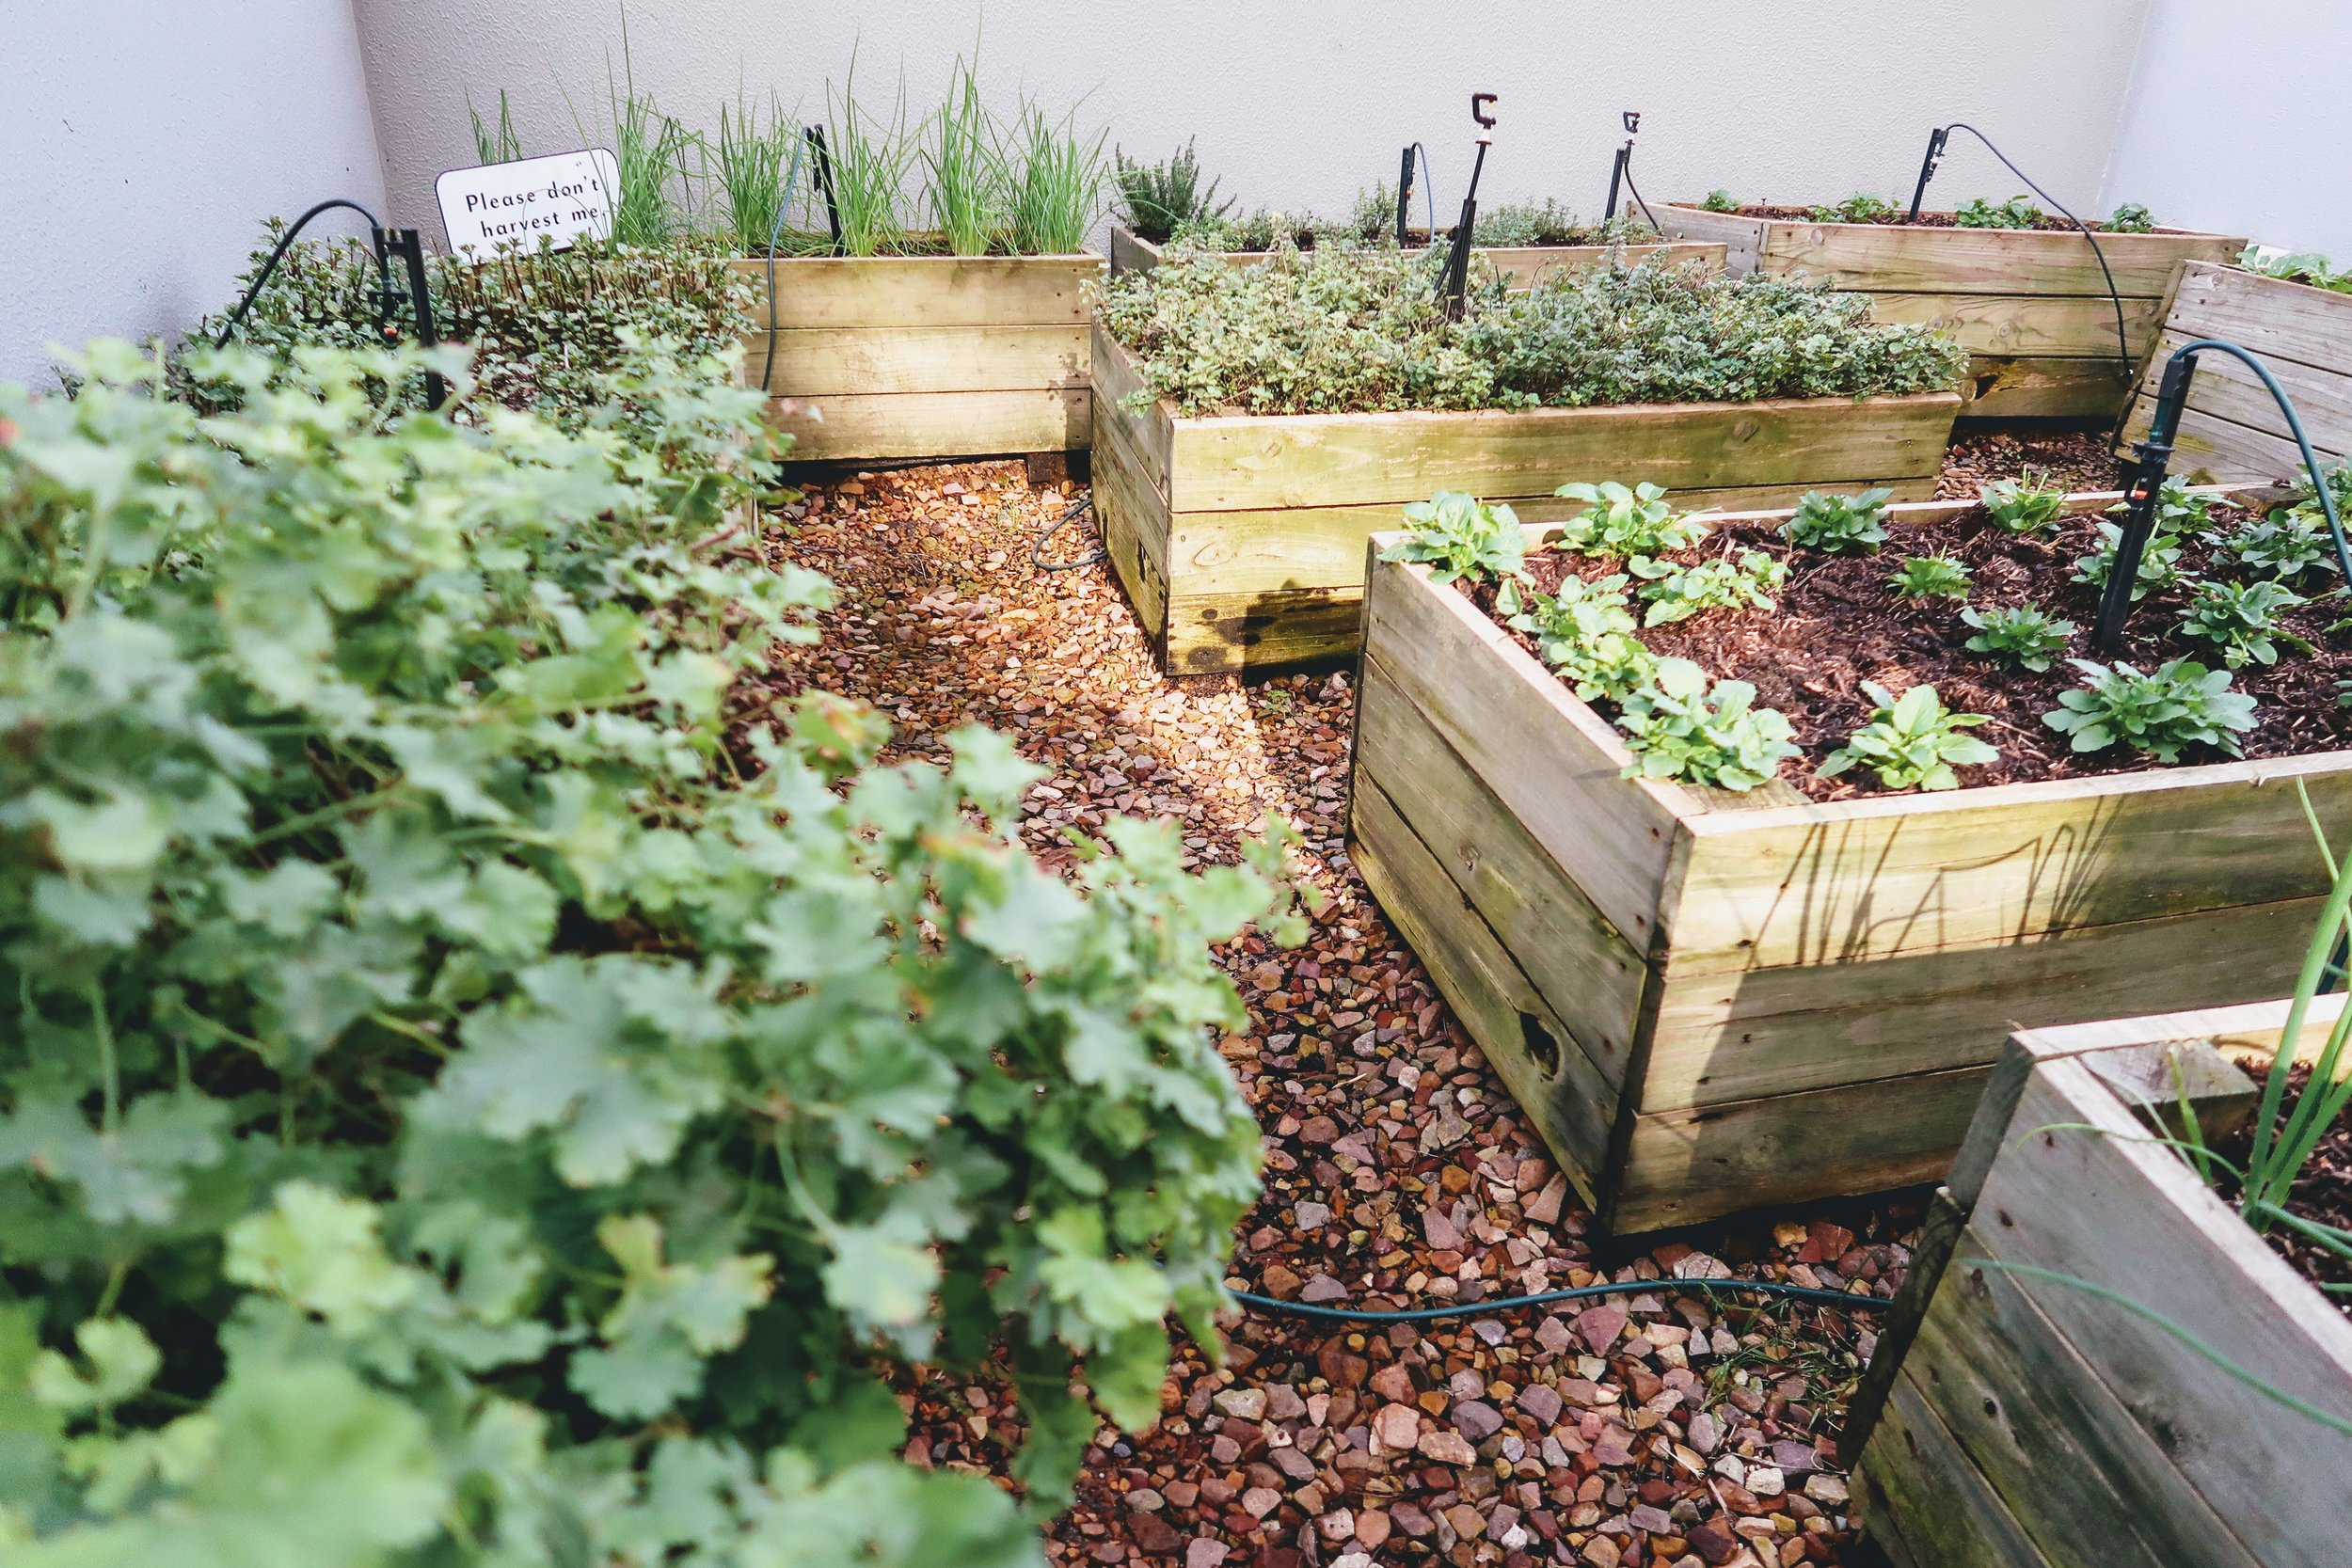 DoubleTree by Hilton Cape Town's very own outdoor herb garden.